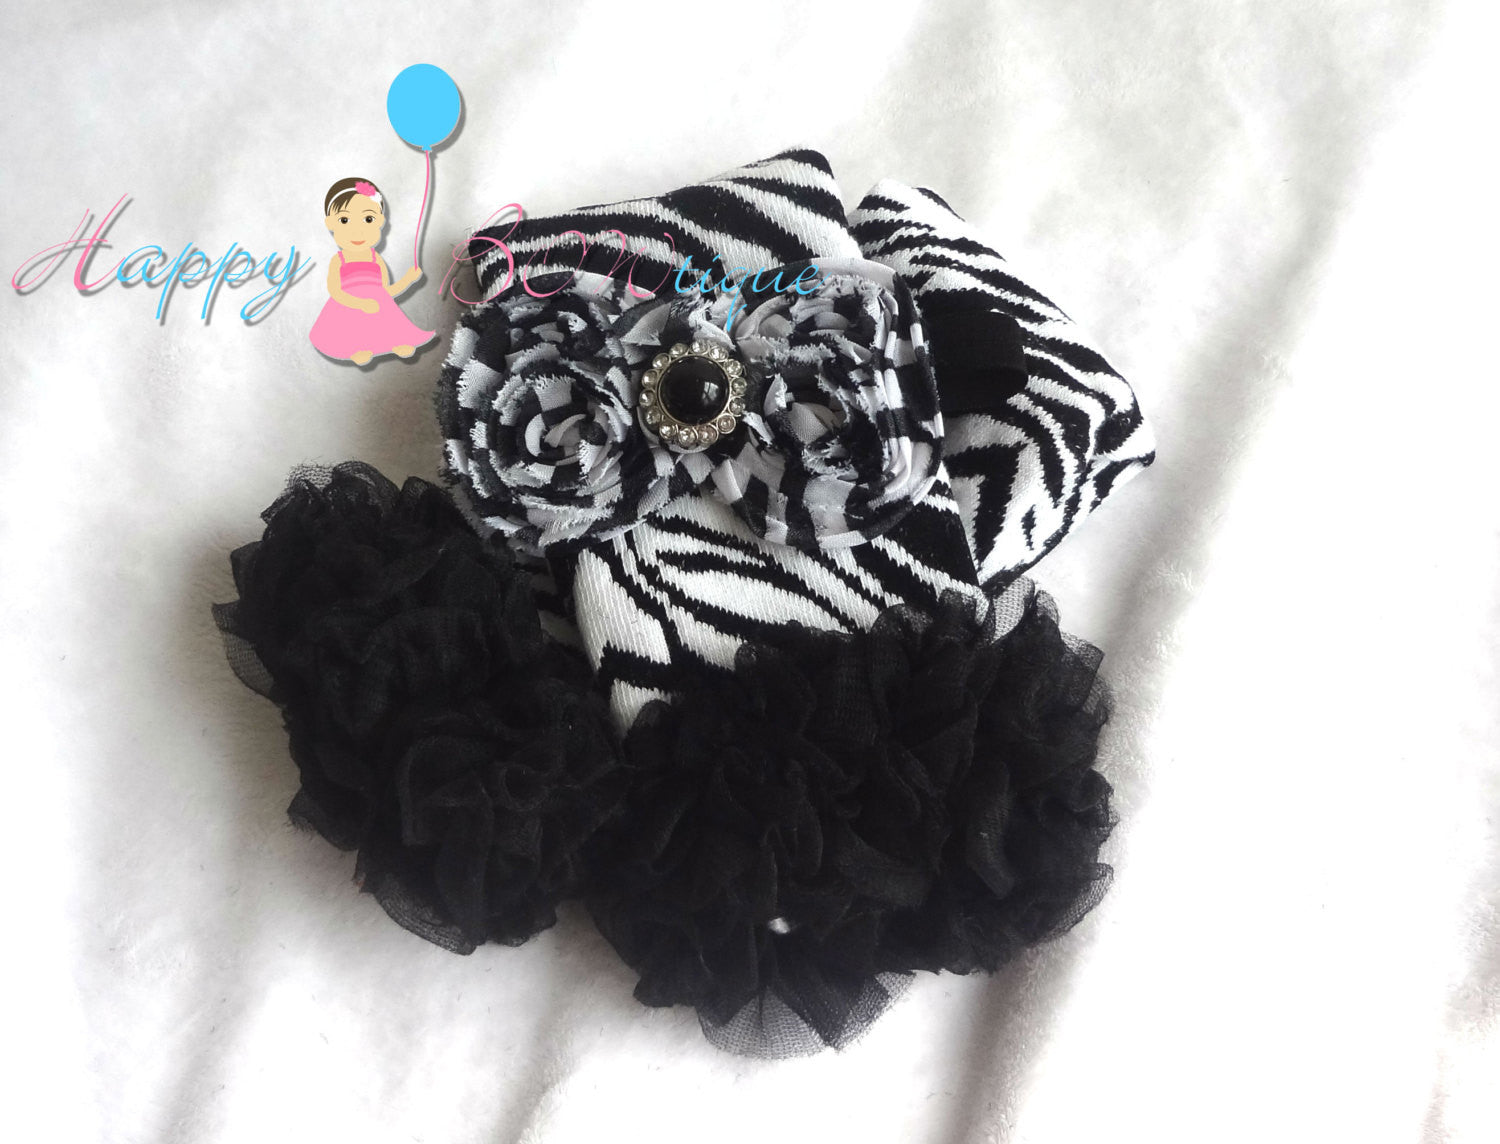 Zebra Tutus legwarmers & headband set - Happy BOWtique - children's clothing, Baby Girl clothing